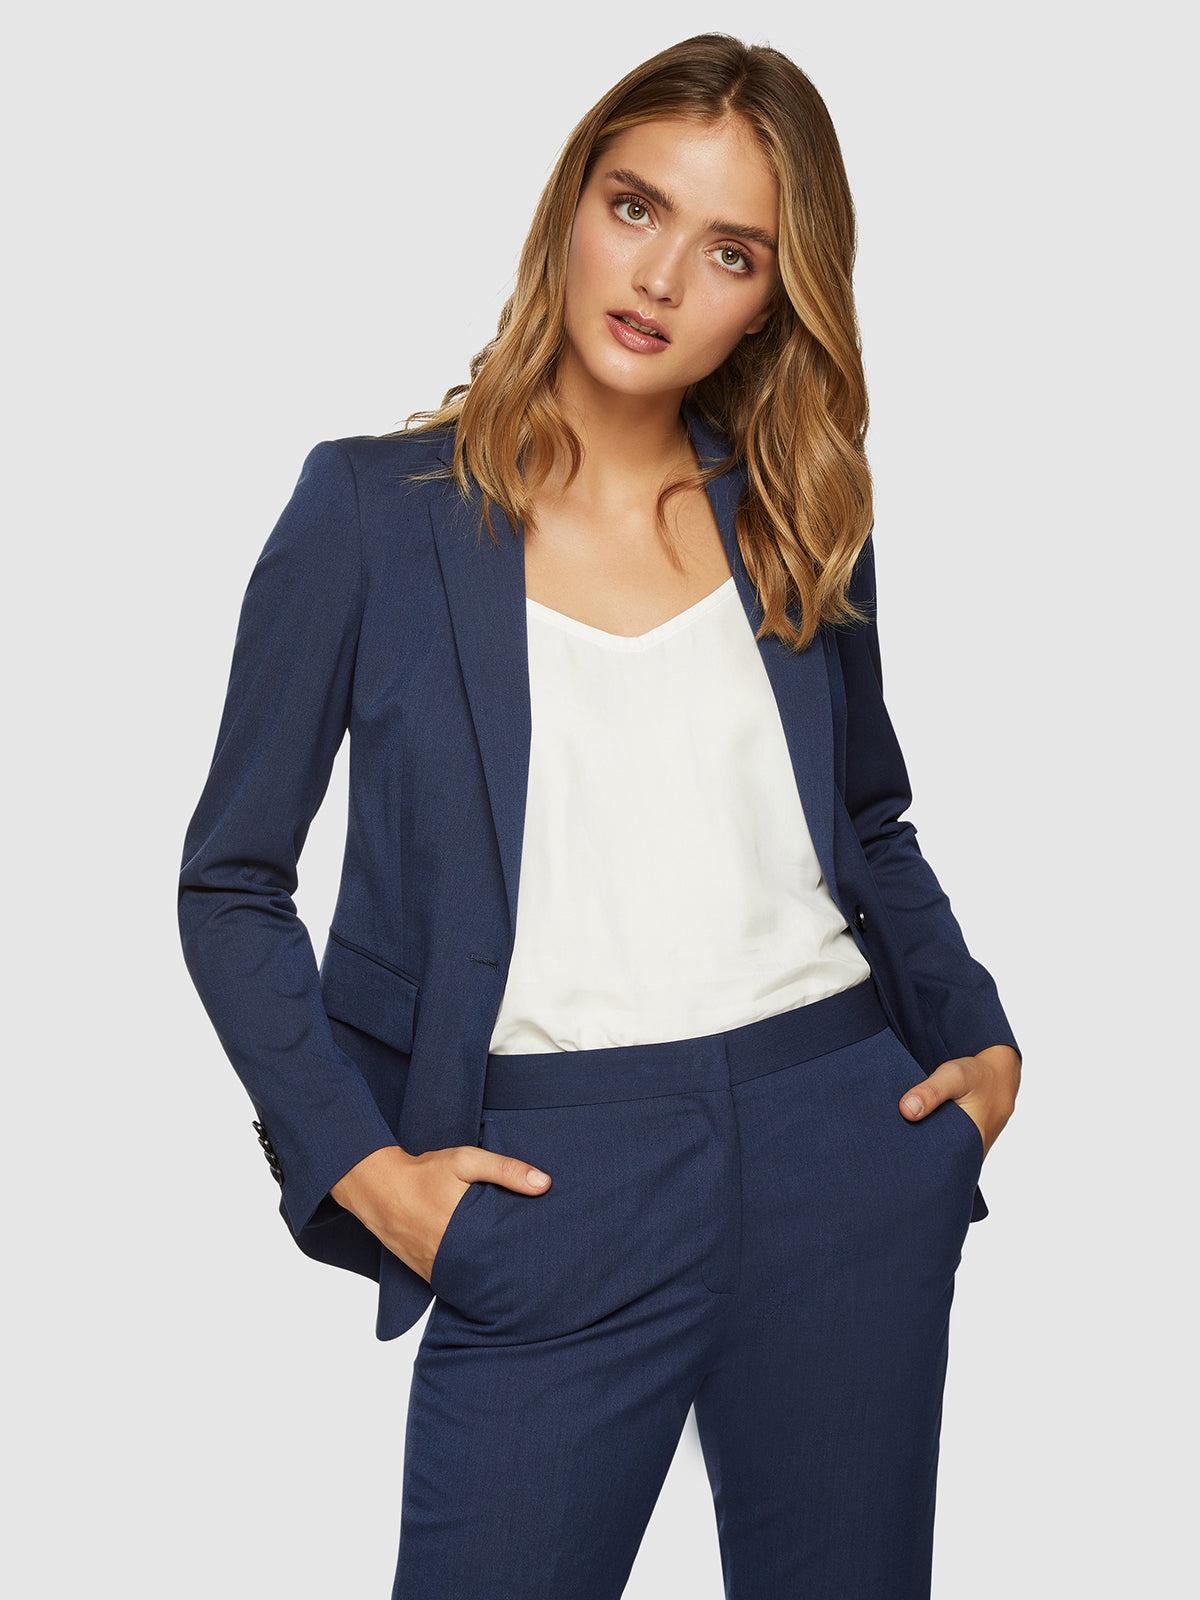 ALEXA ECO SUIT JACKET